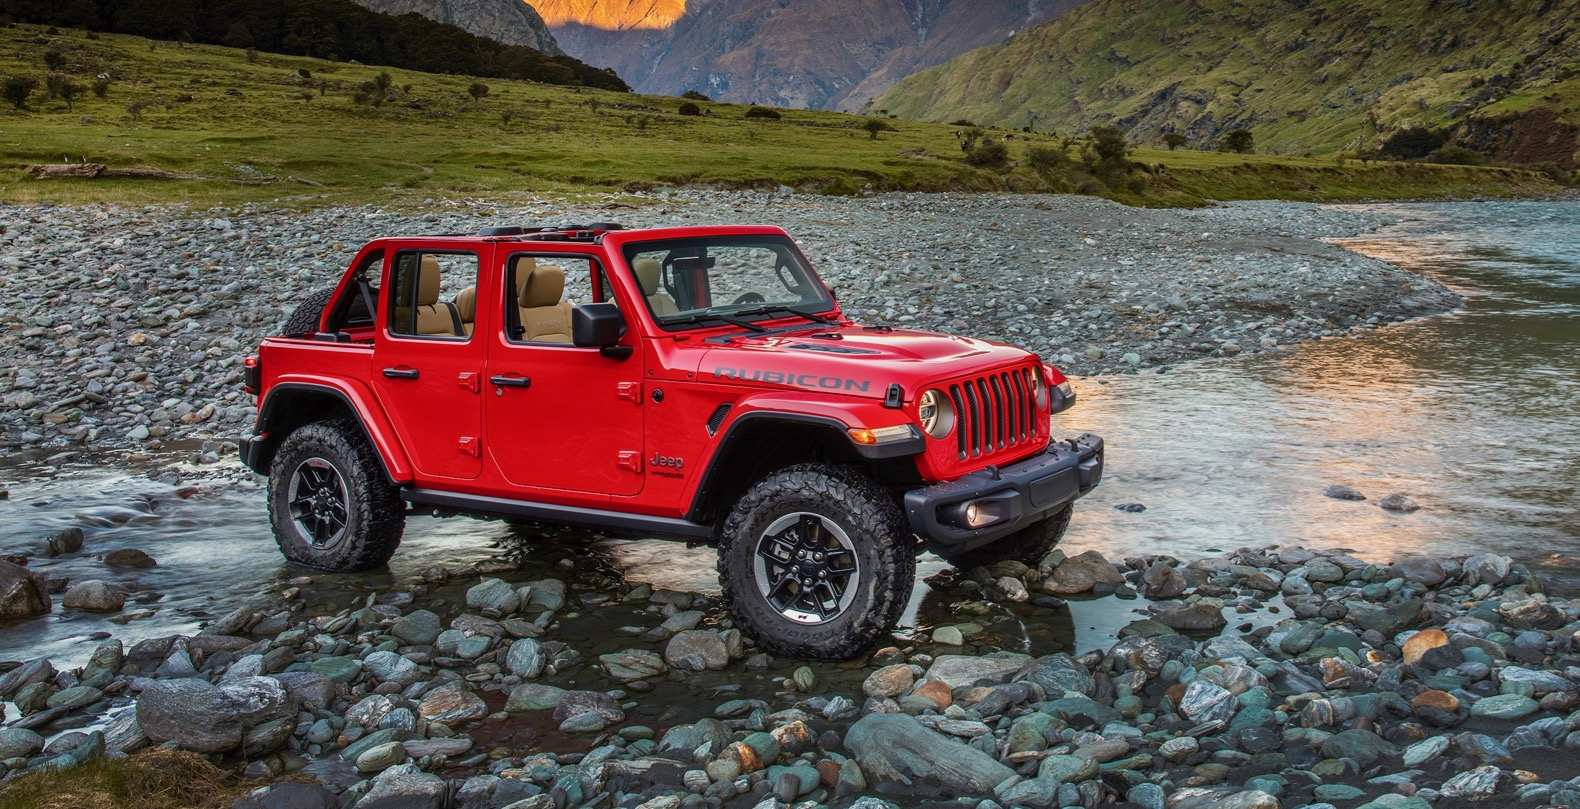 58 Concept of 2020 Jeep Wrangler Updates New Concept for 2020 Jeep Wrangler Updates